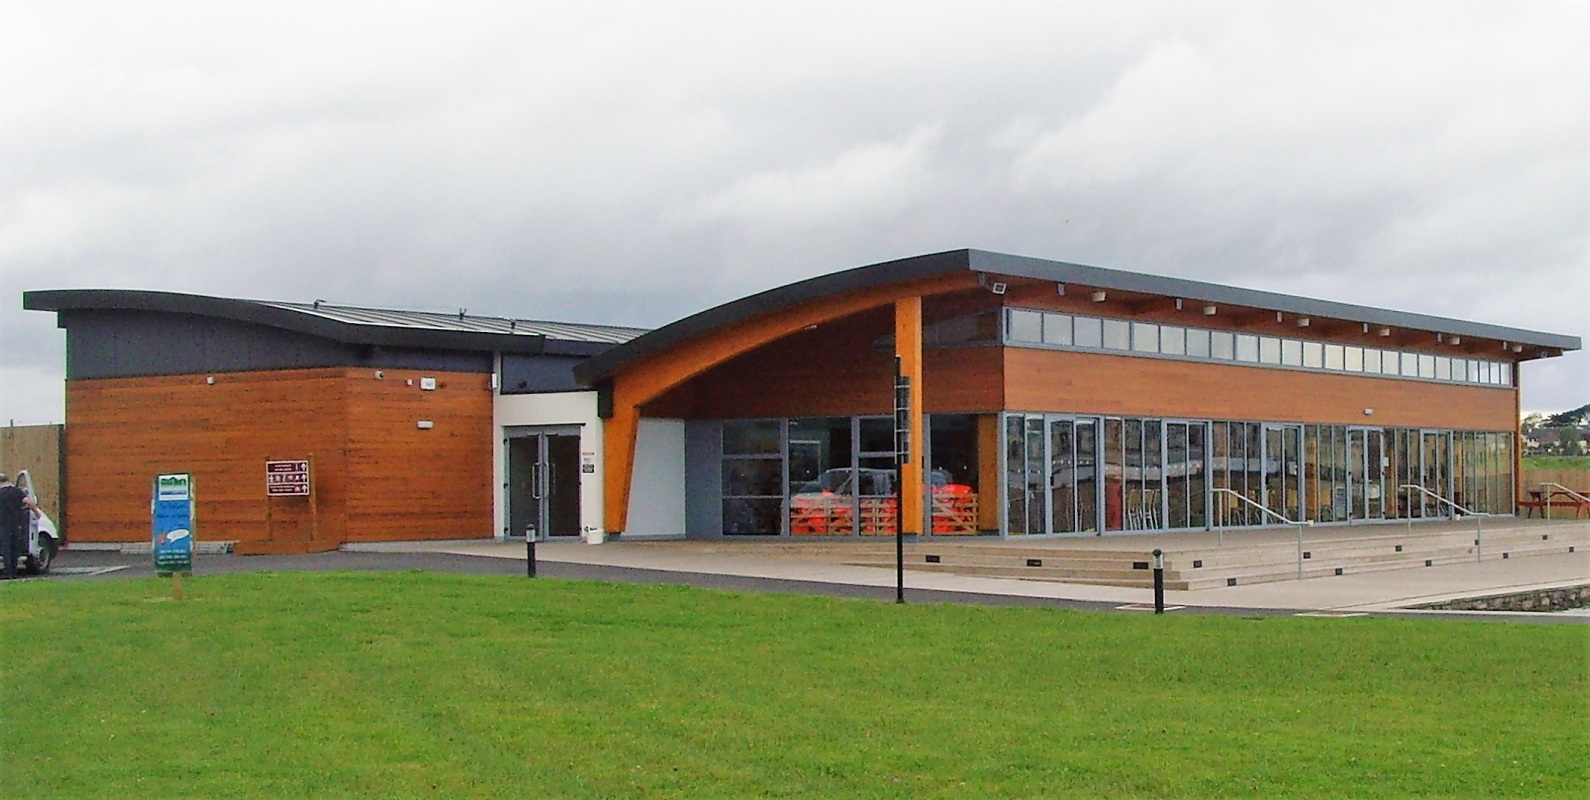 This is a photograph of the Tralee Bay Wetlands centre built using ICF construciton